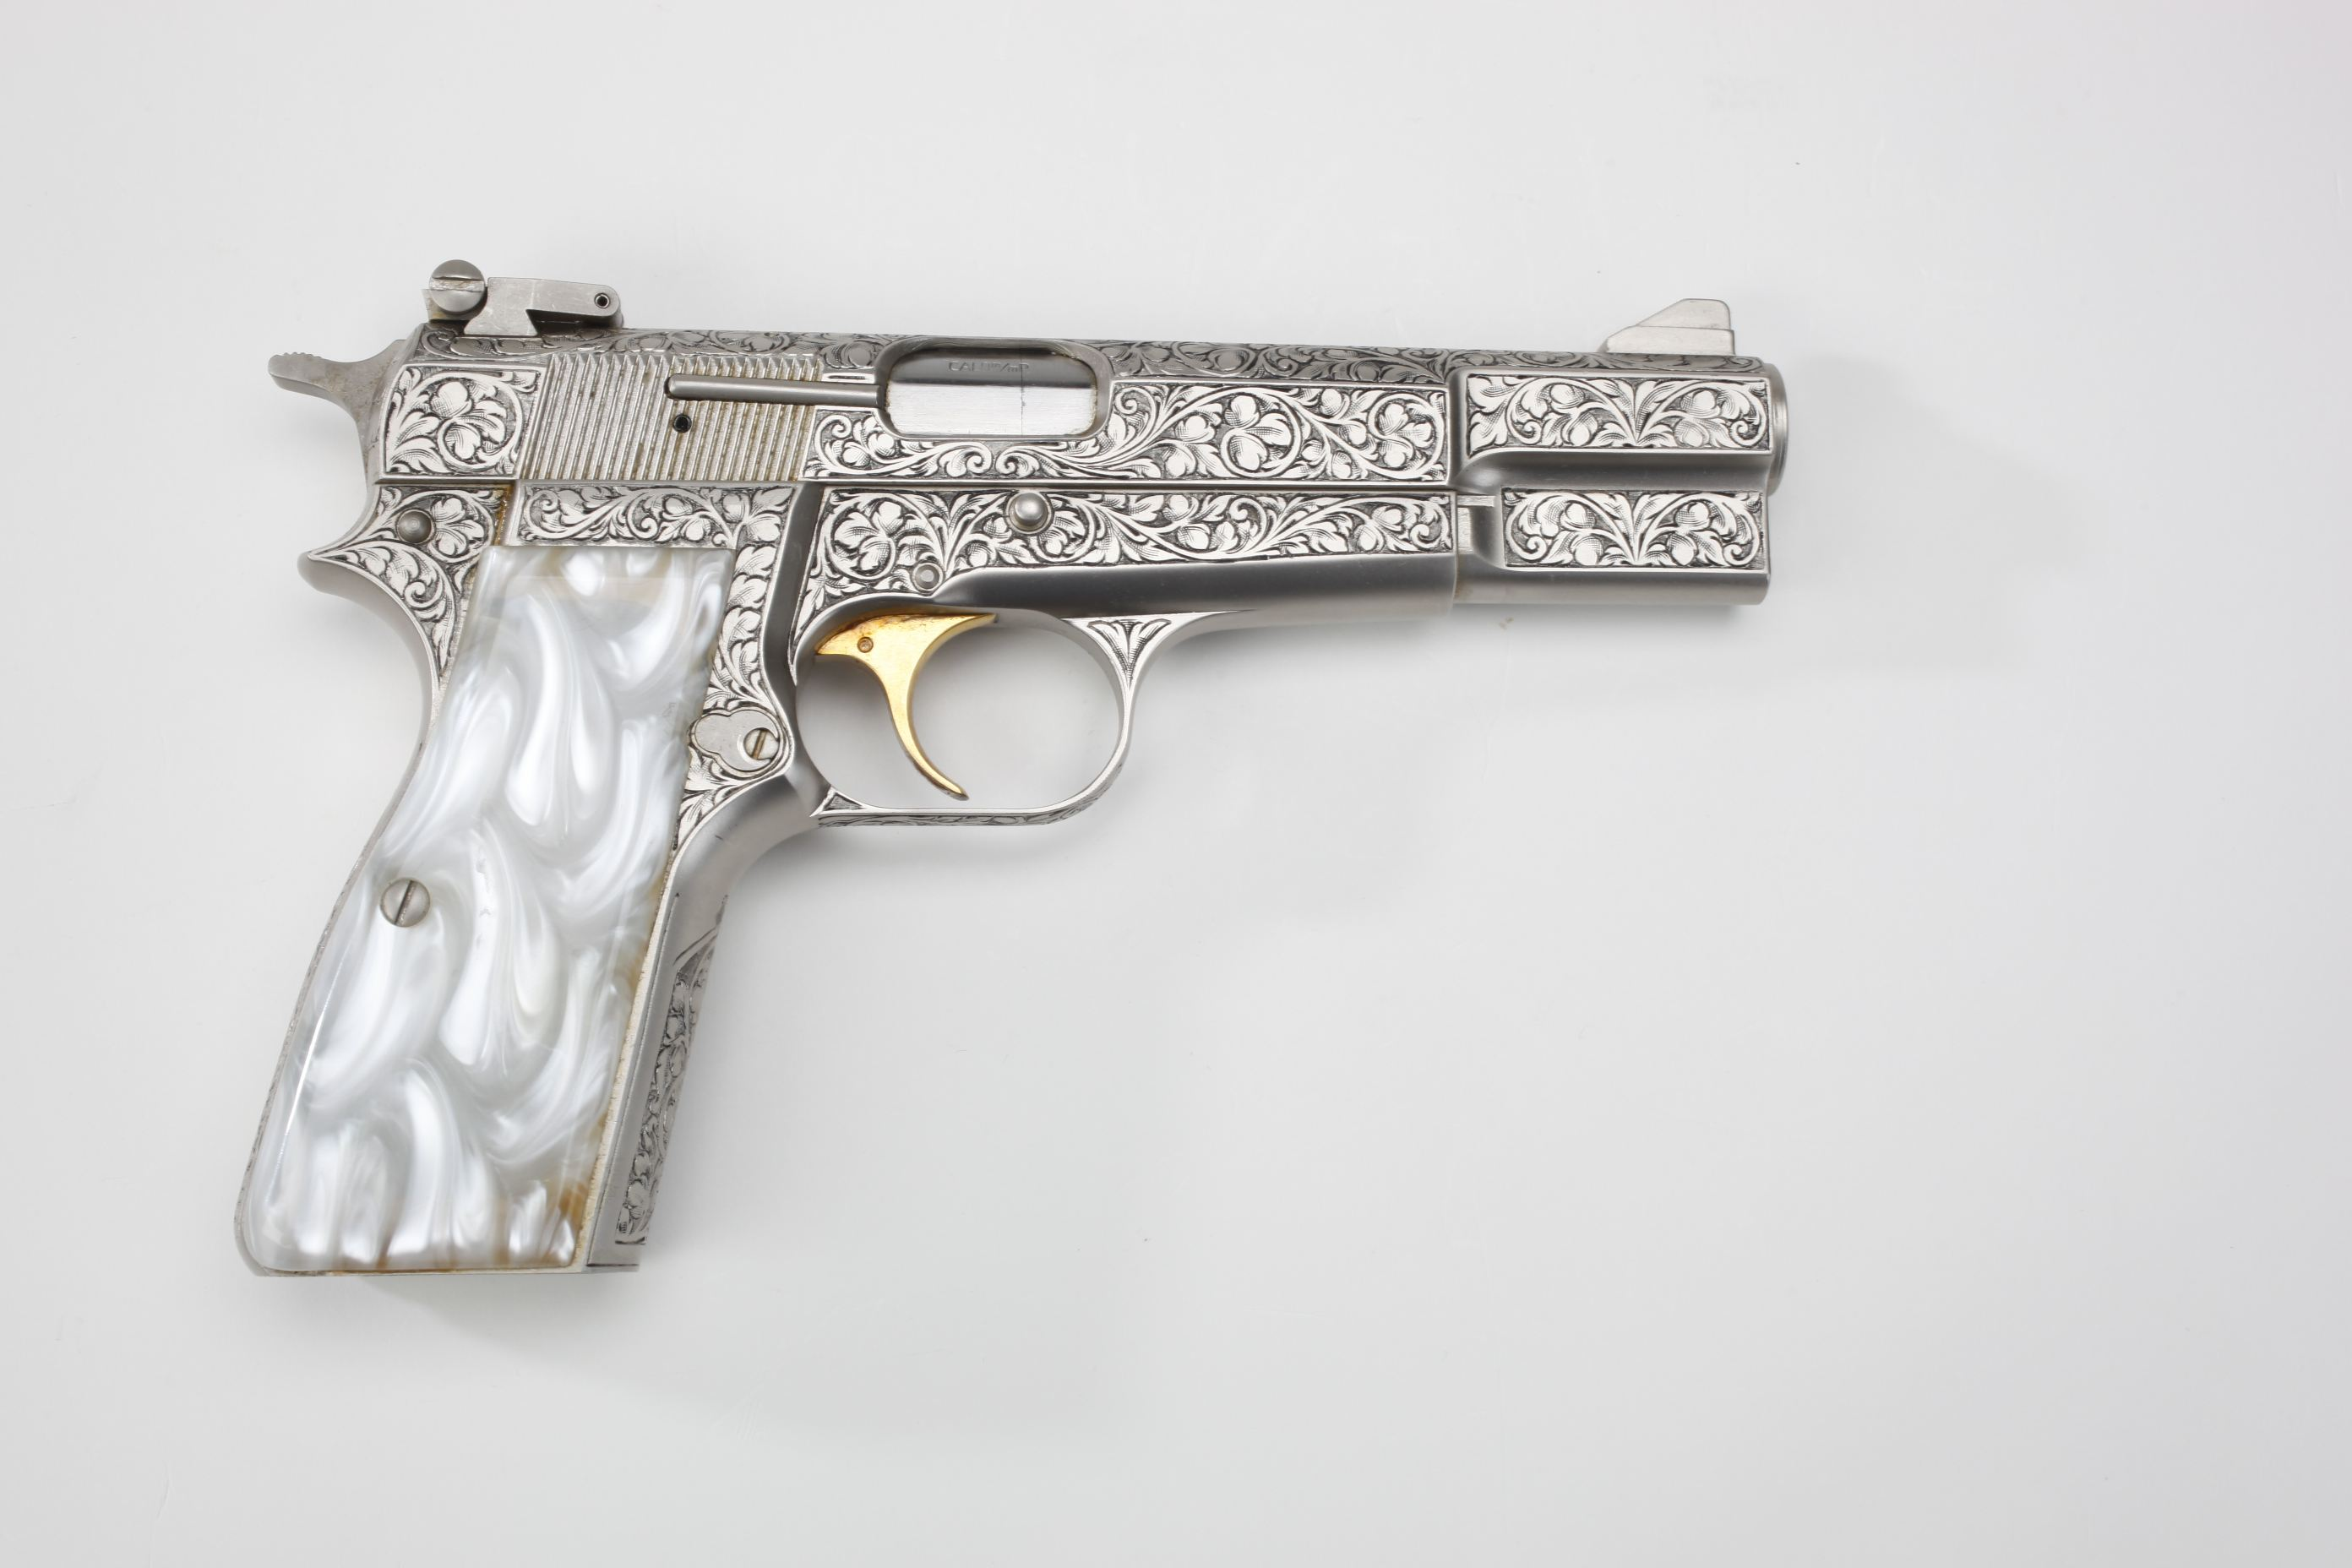 Browning  Renaissance Hi-Power Semi-Automatic Pistol